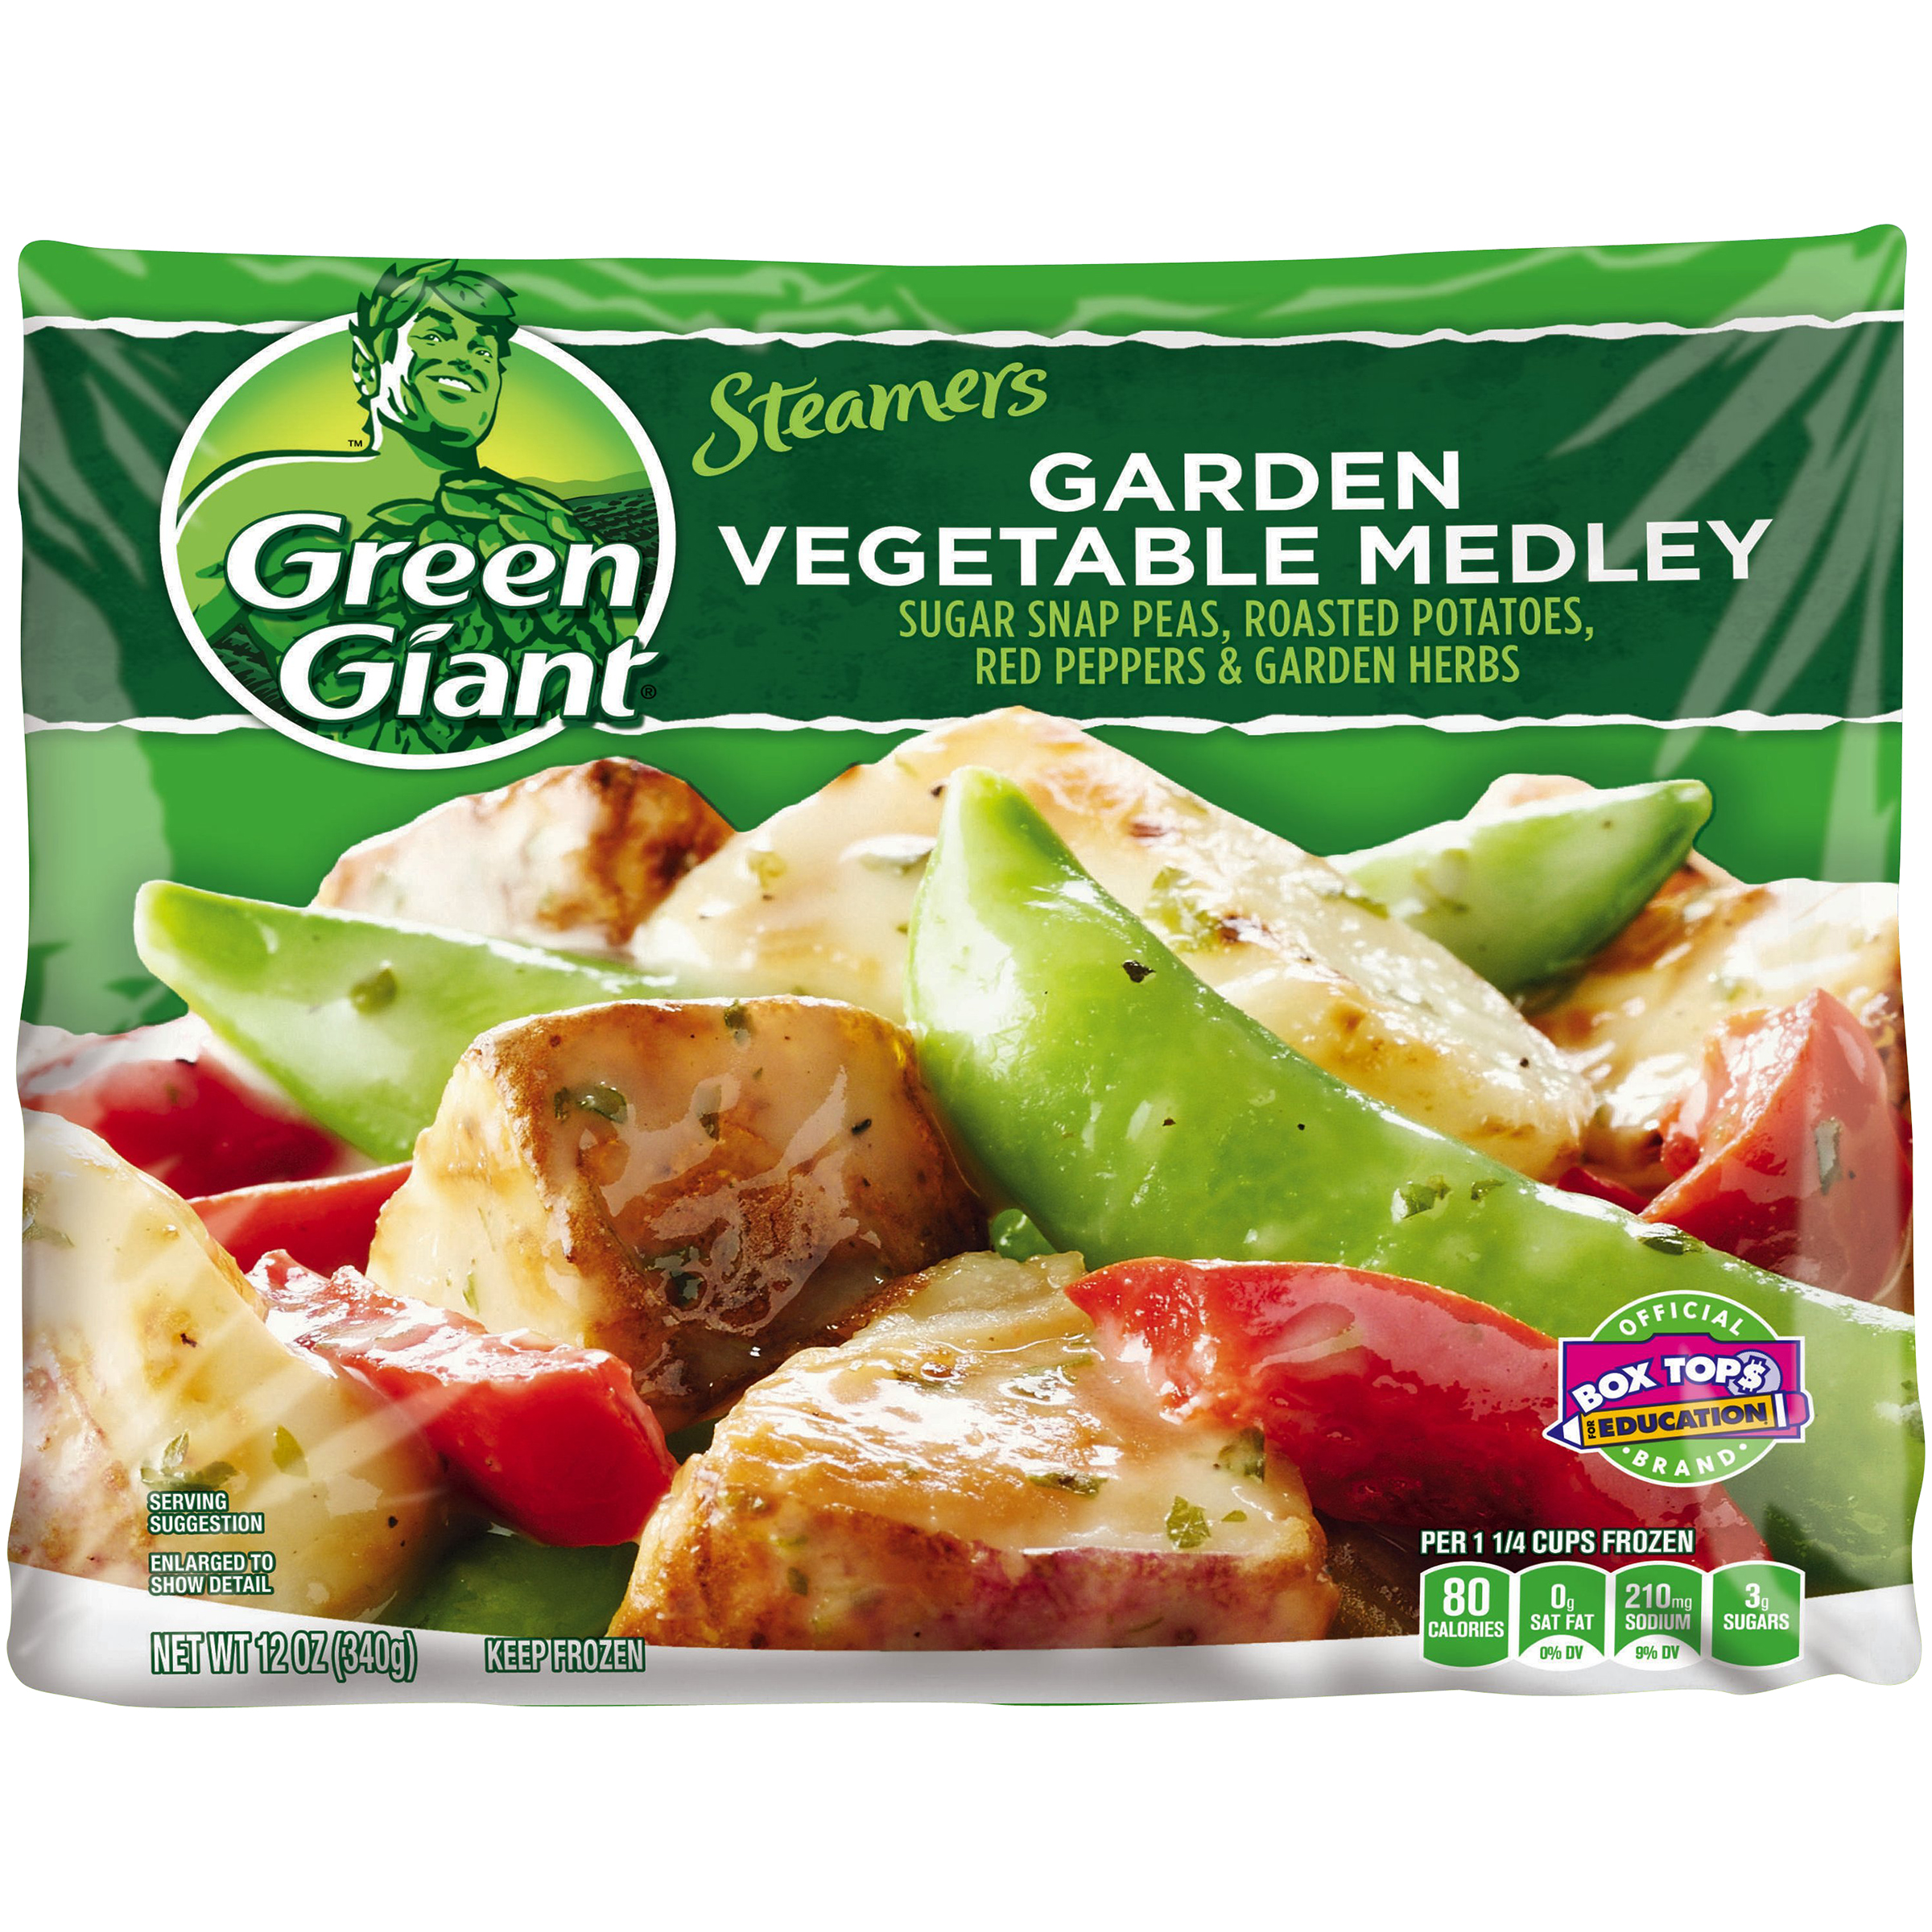 Green Giant® Steamers Garden Vegetable Medley 12 oz. Bag